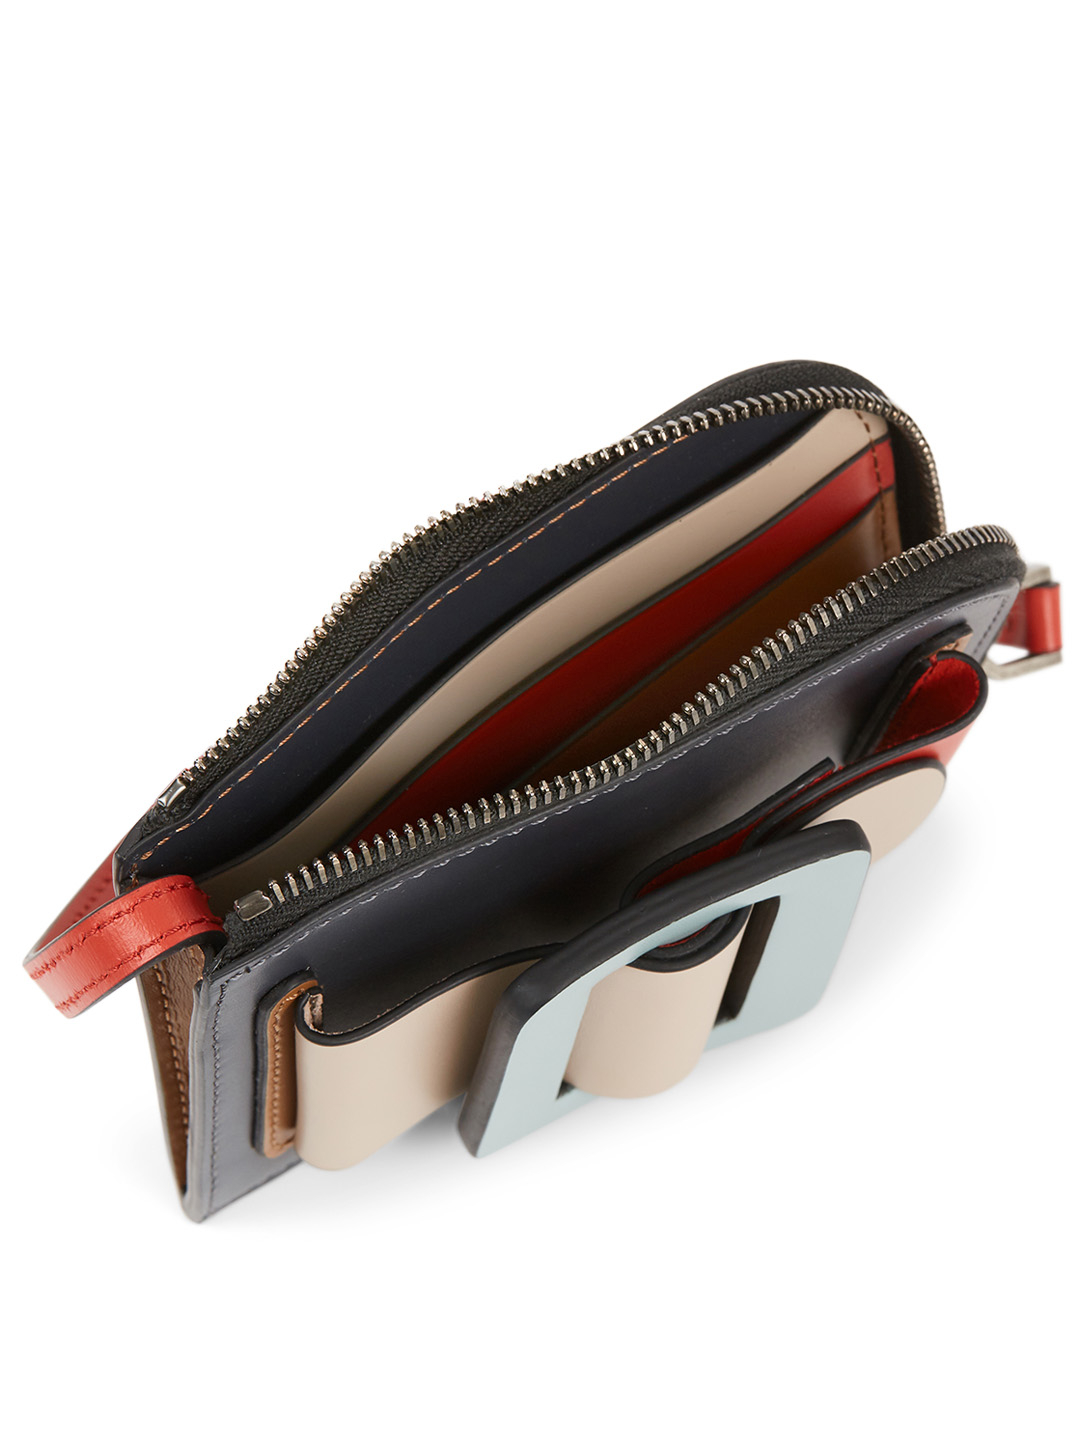 BOYY Buckle Colourblock Leather Card Holder Women's Multi